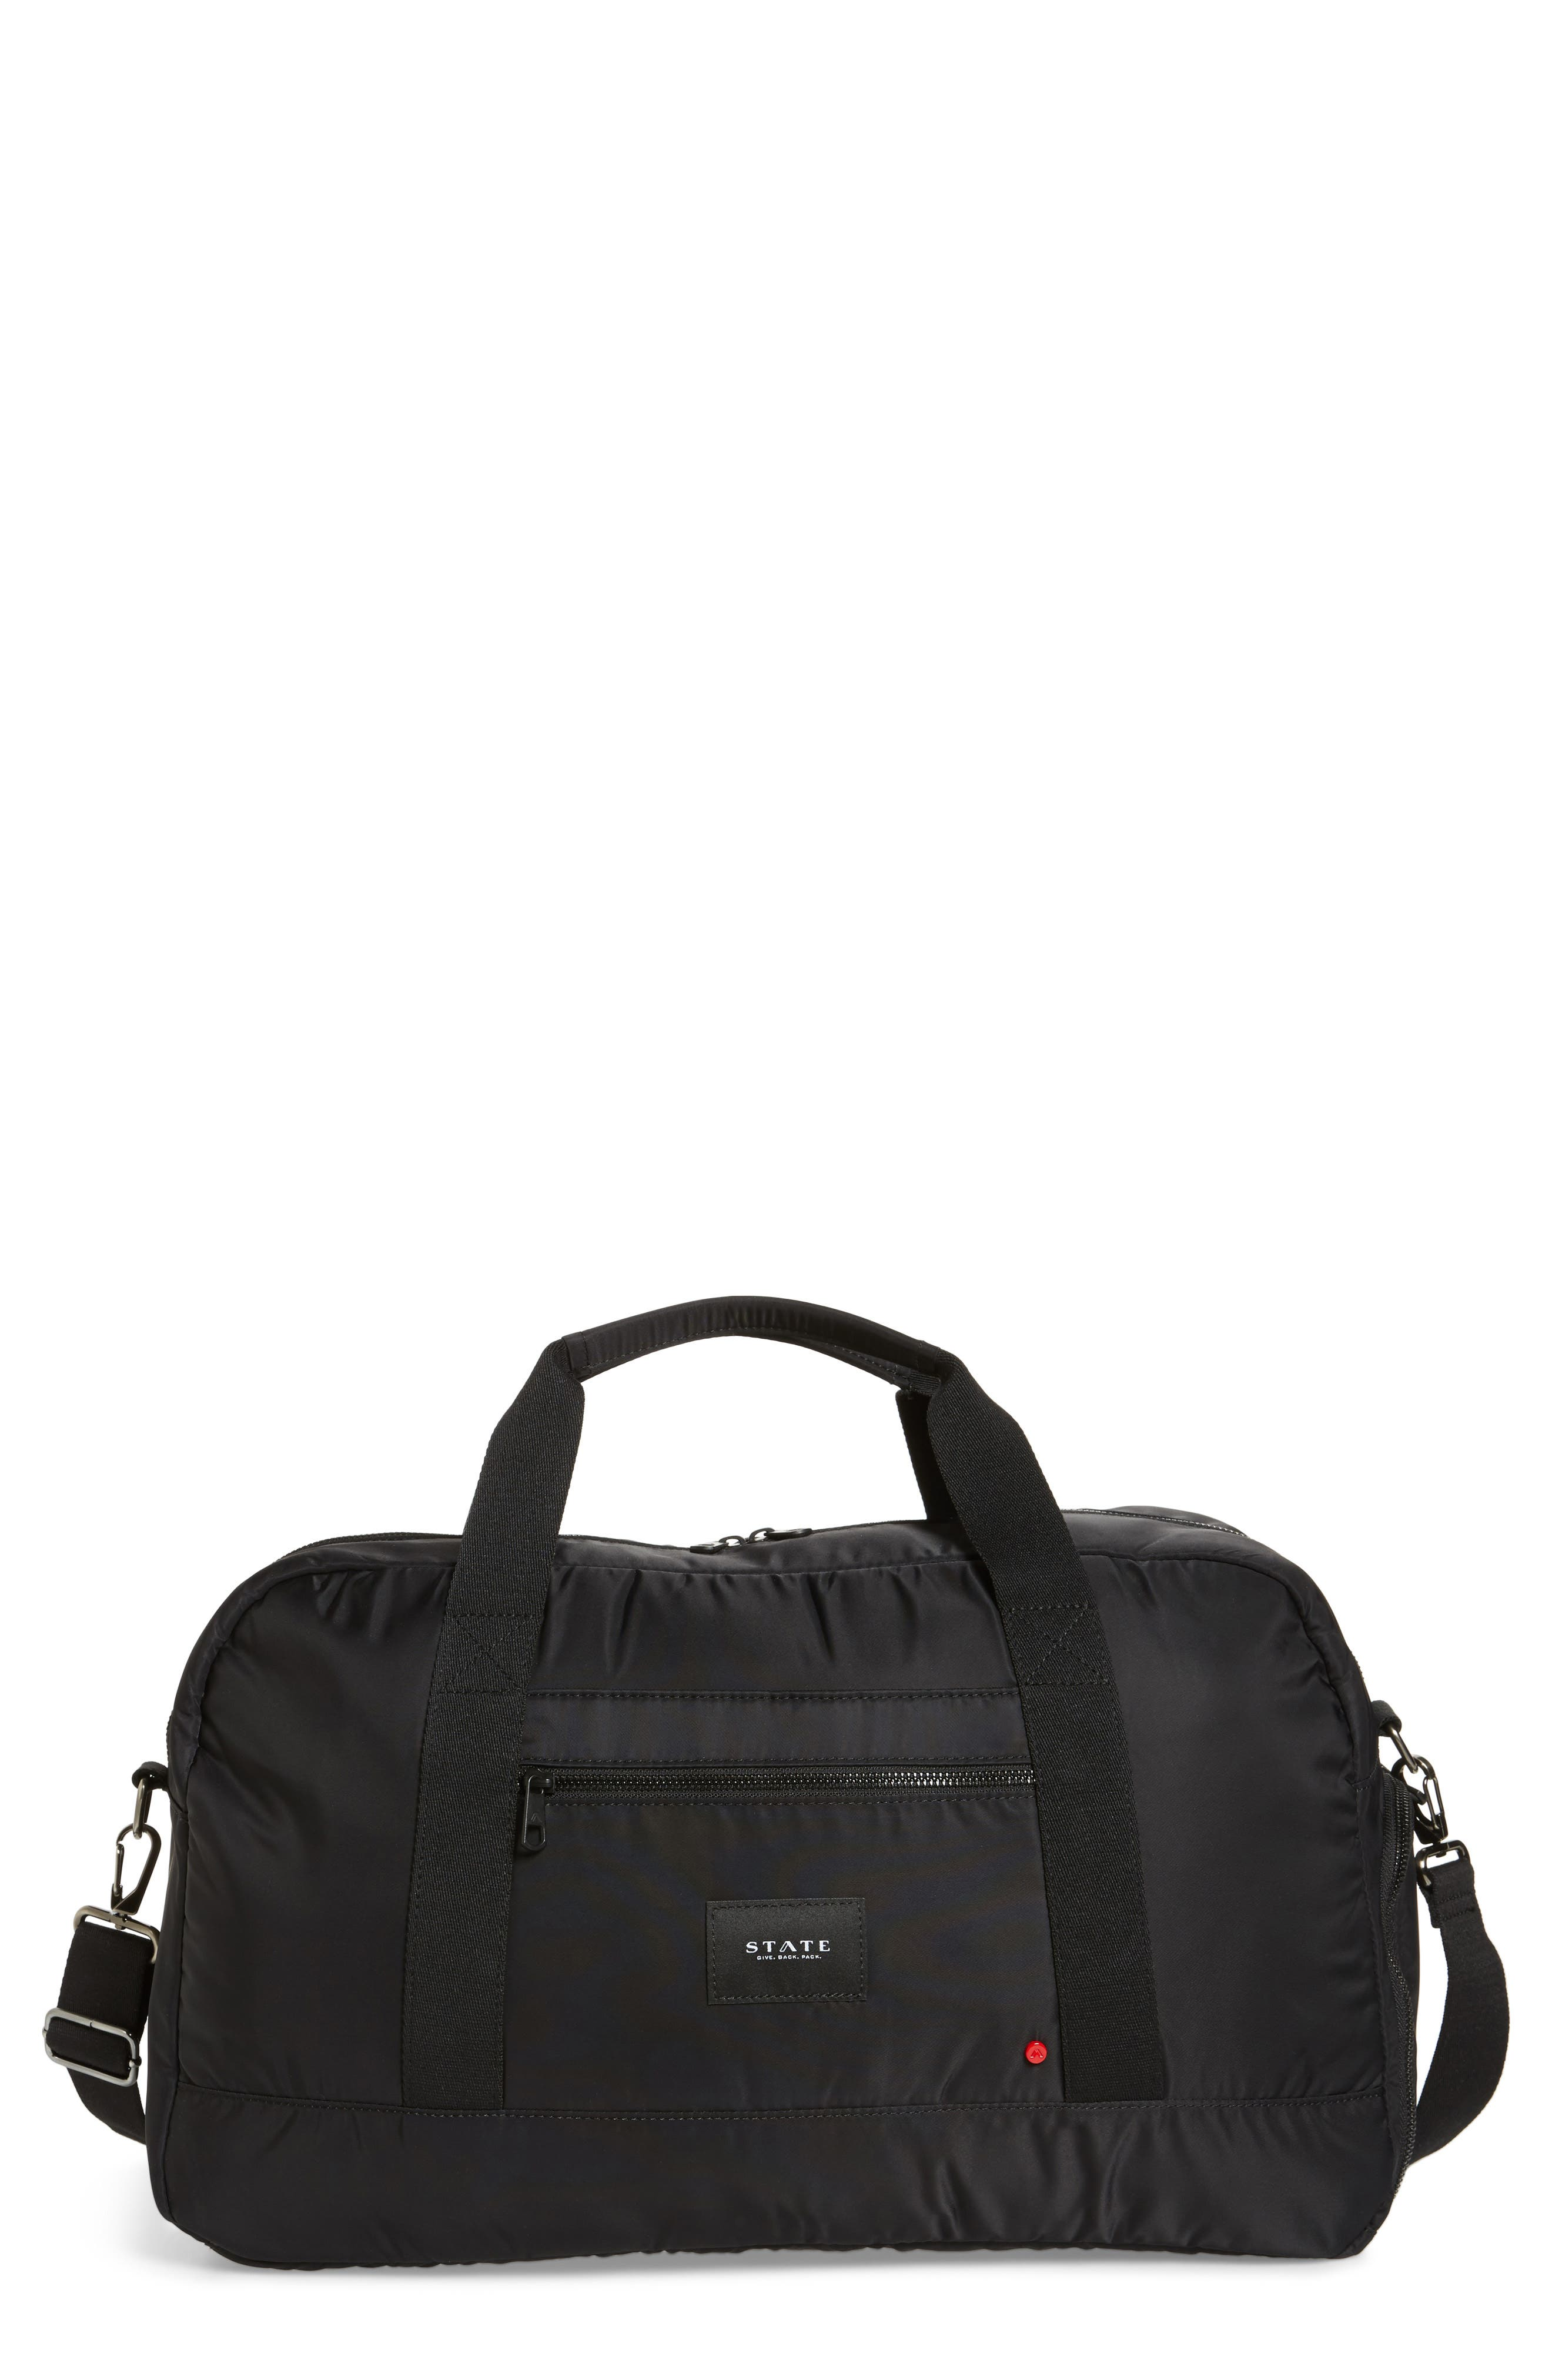 The Heights - Franklin Nylon Duffel Bag,                         Main,                         color, Black